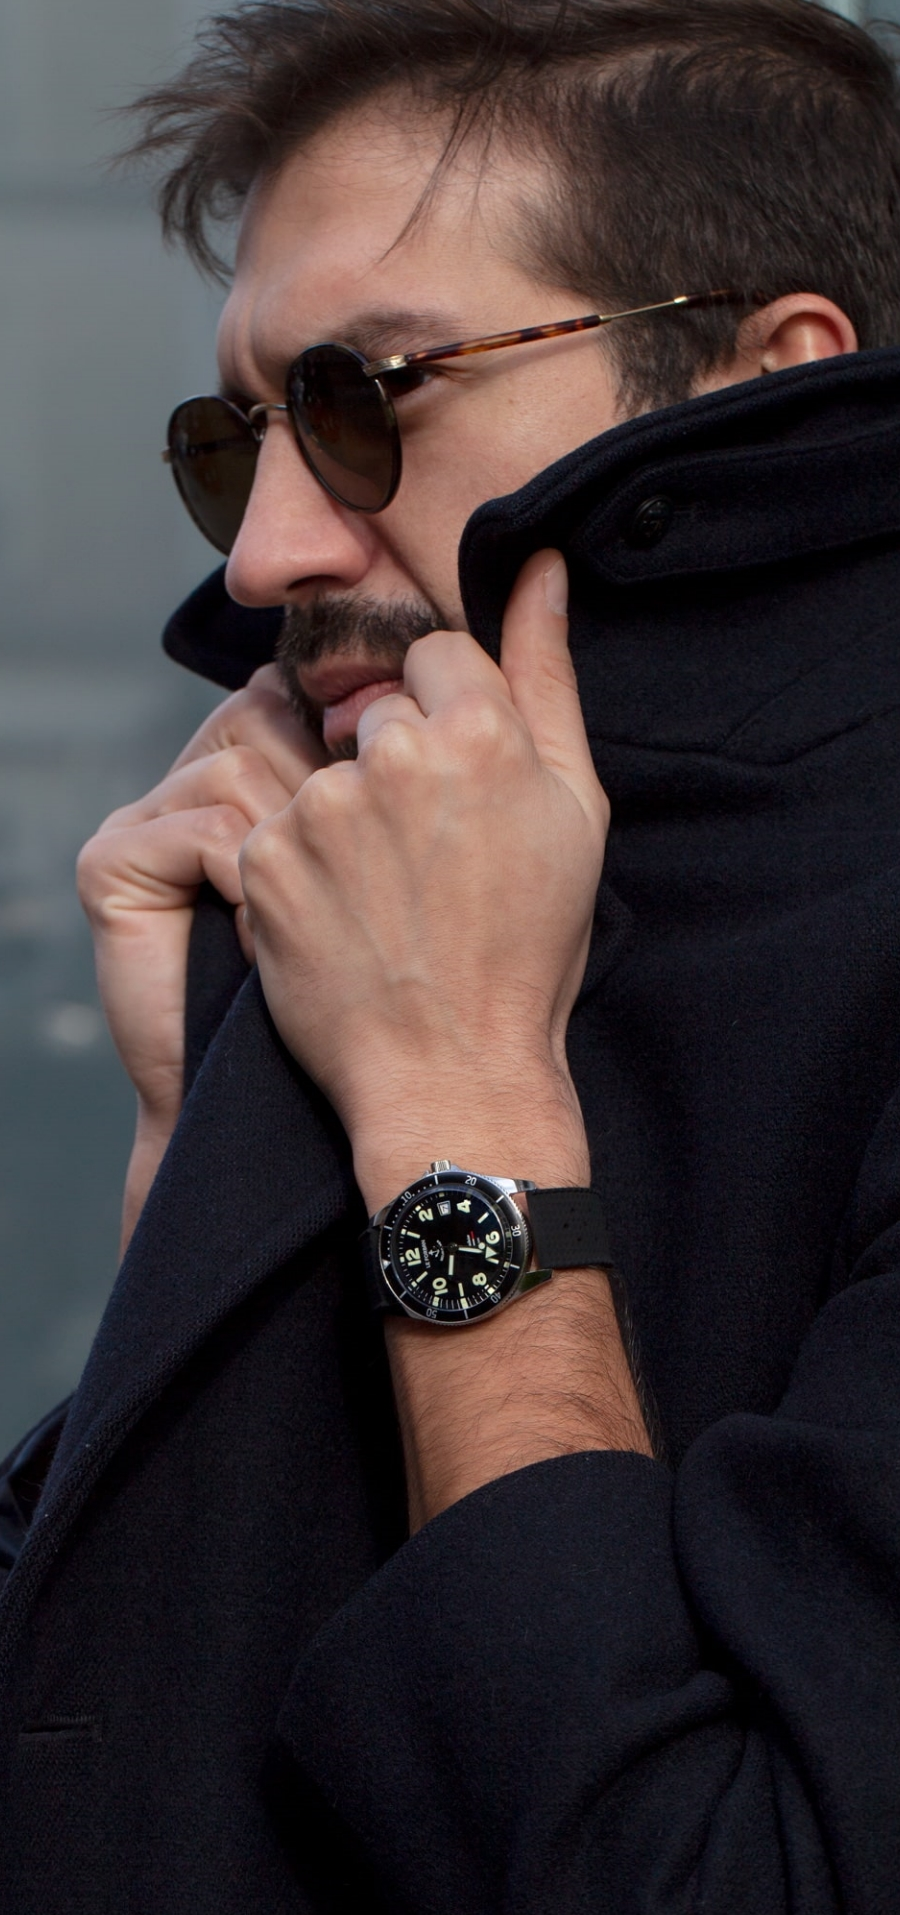 Focus of the watch on a wrist